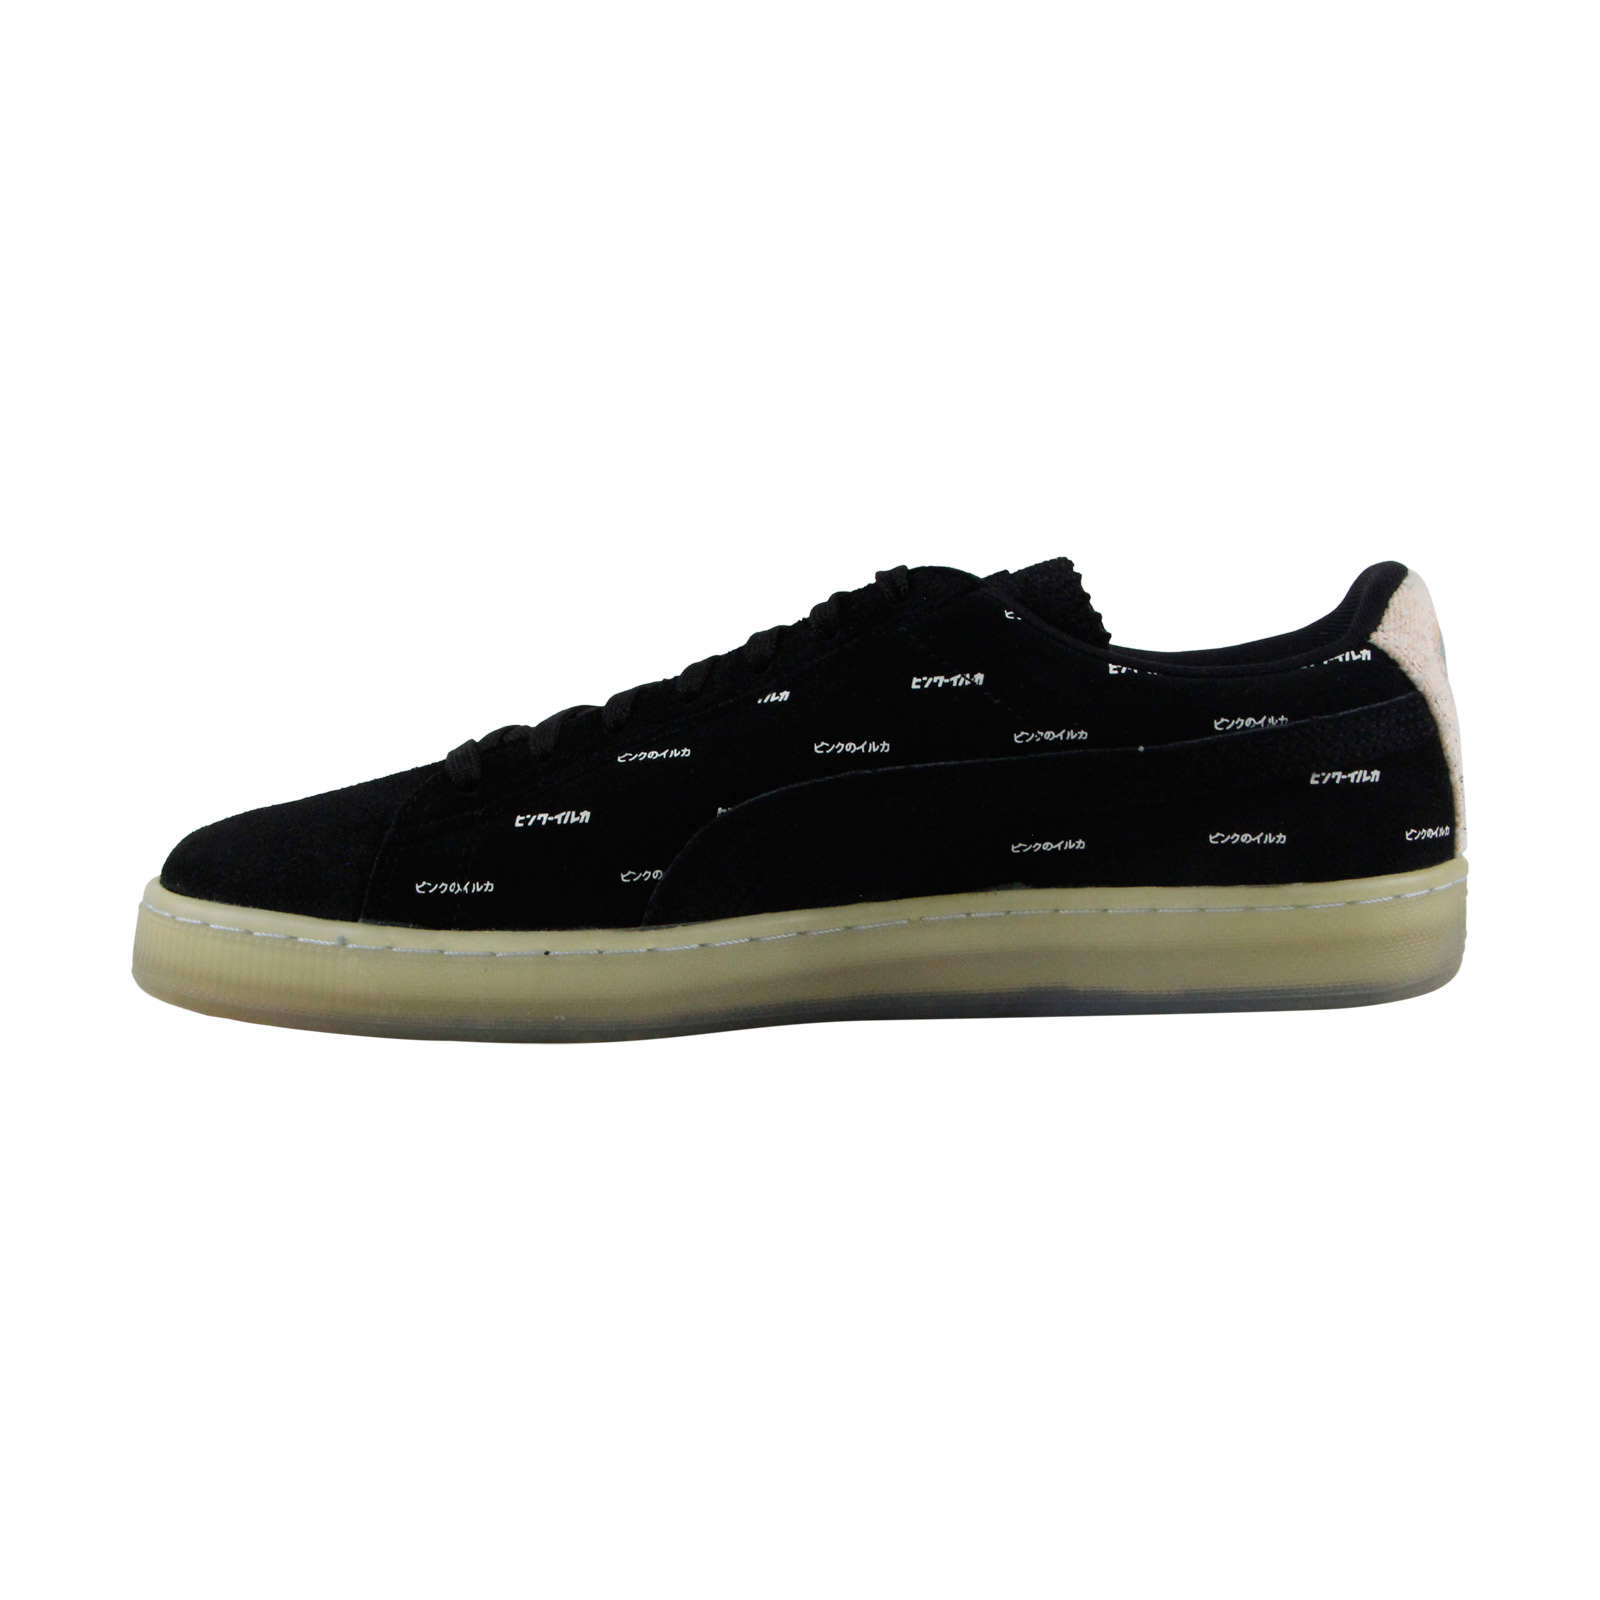 6b324dbd653 Puma V2 Pink Dolphin Mens Black Suede Lace Up Sneakers Shoes 2 2 of 3 See  More